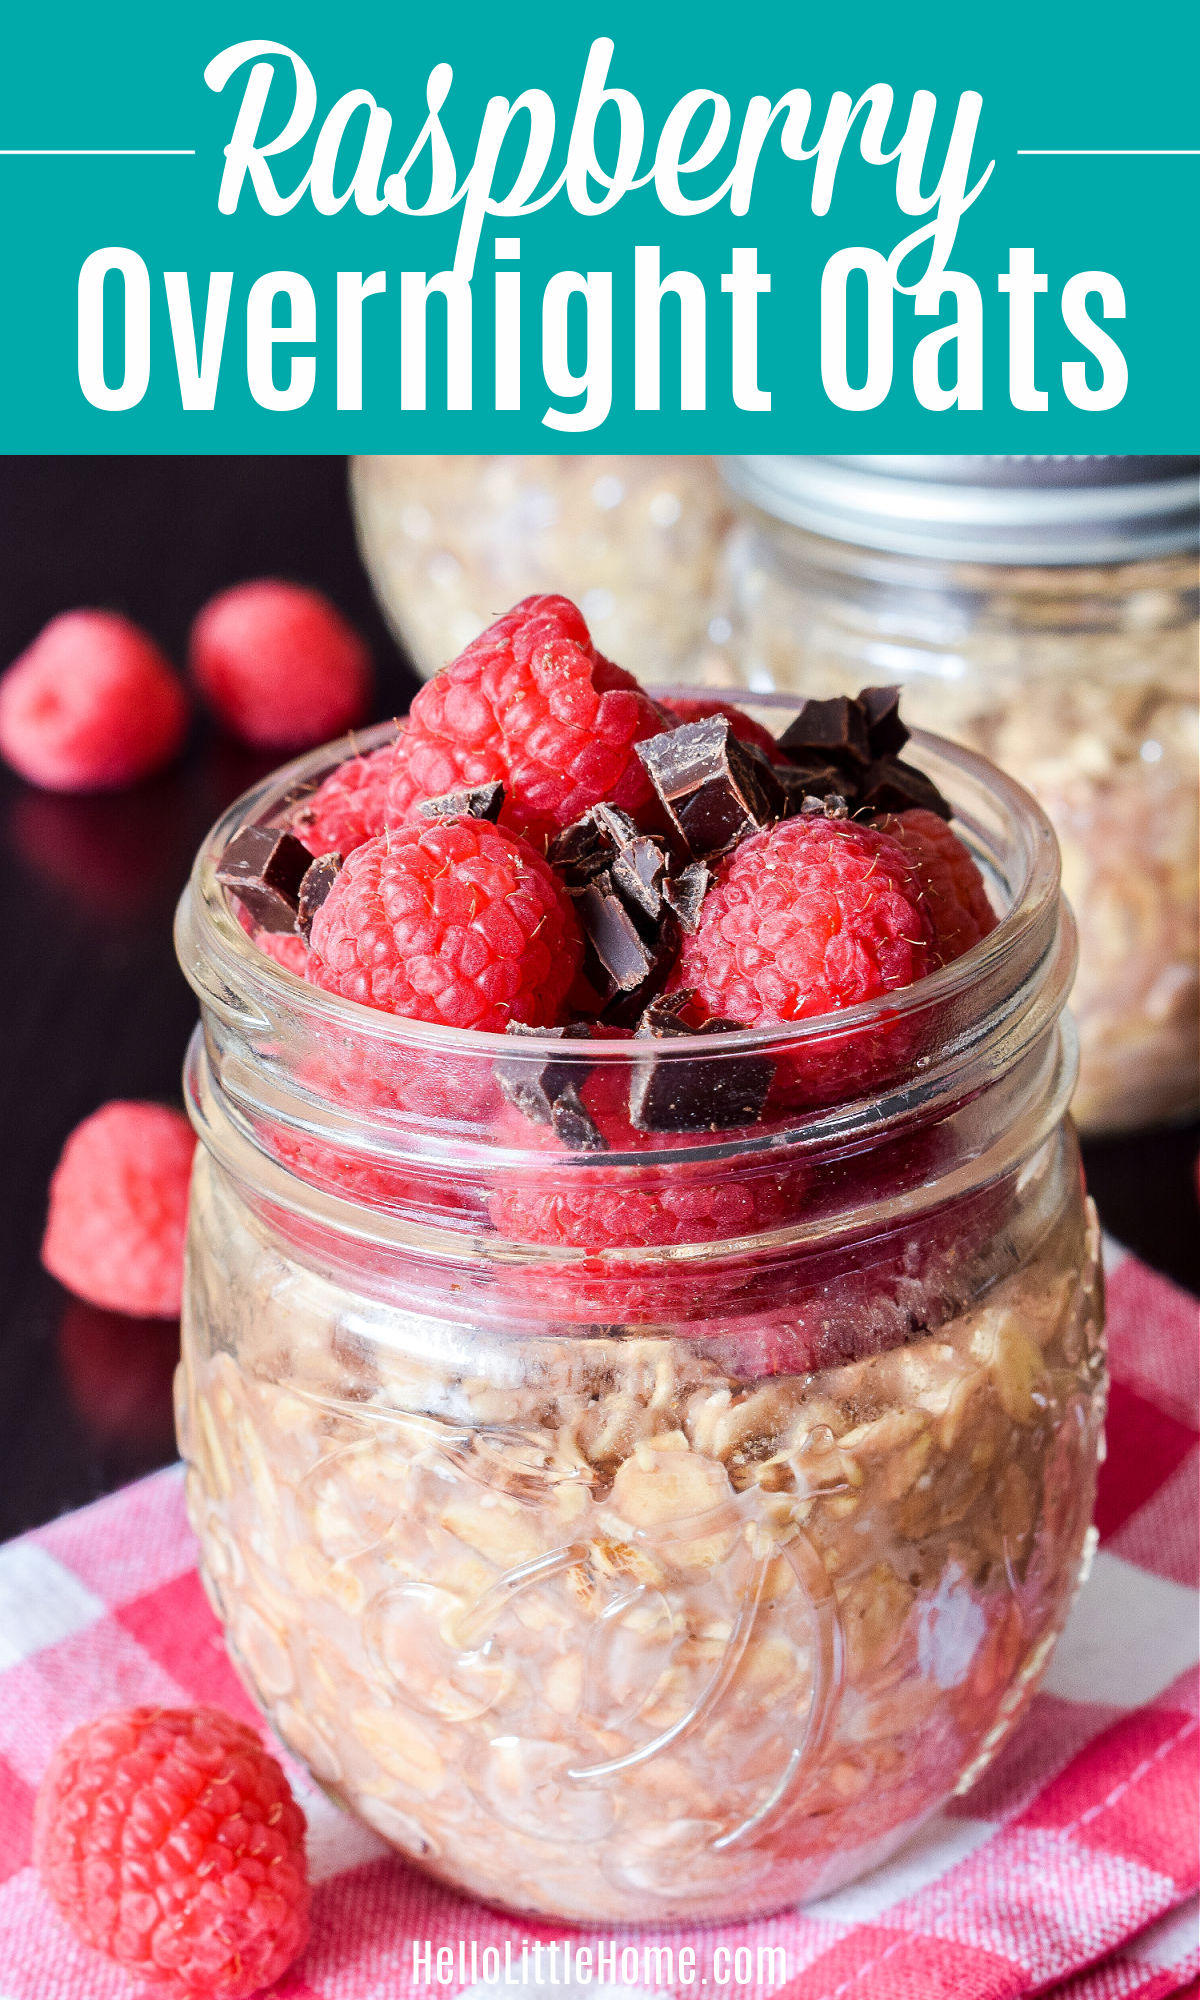 Closeup of the finished Raspberry Overnight Oats in a mason jar.